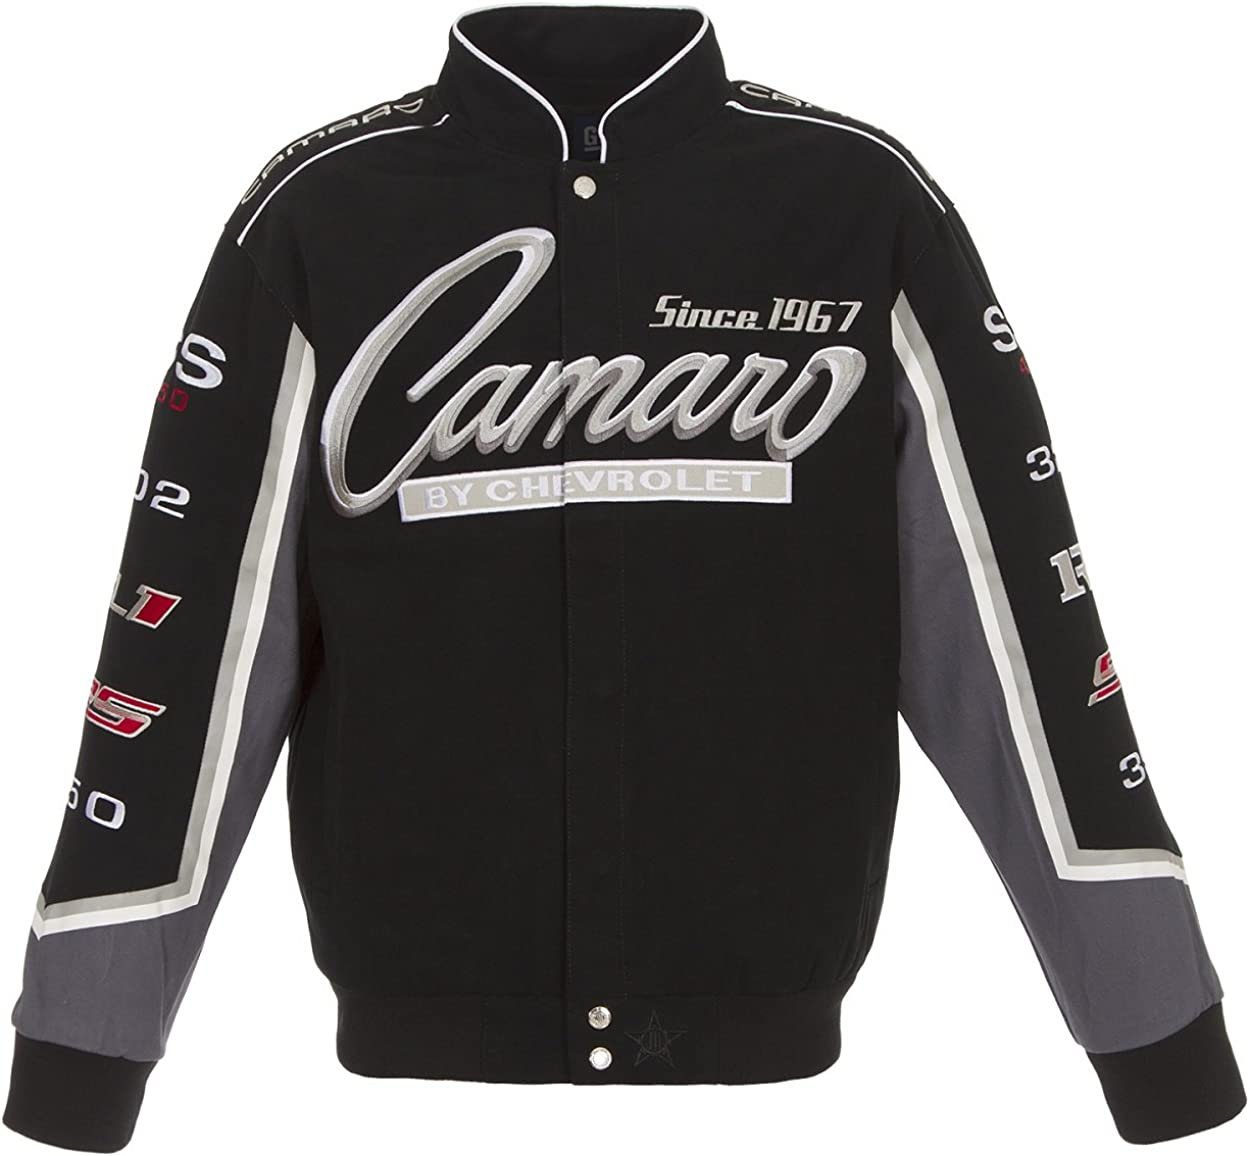 Camaro Cotton Black JH Shipping included trust Jacket Design Size